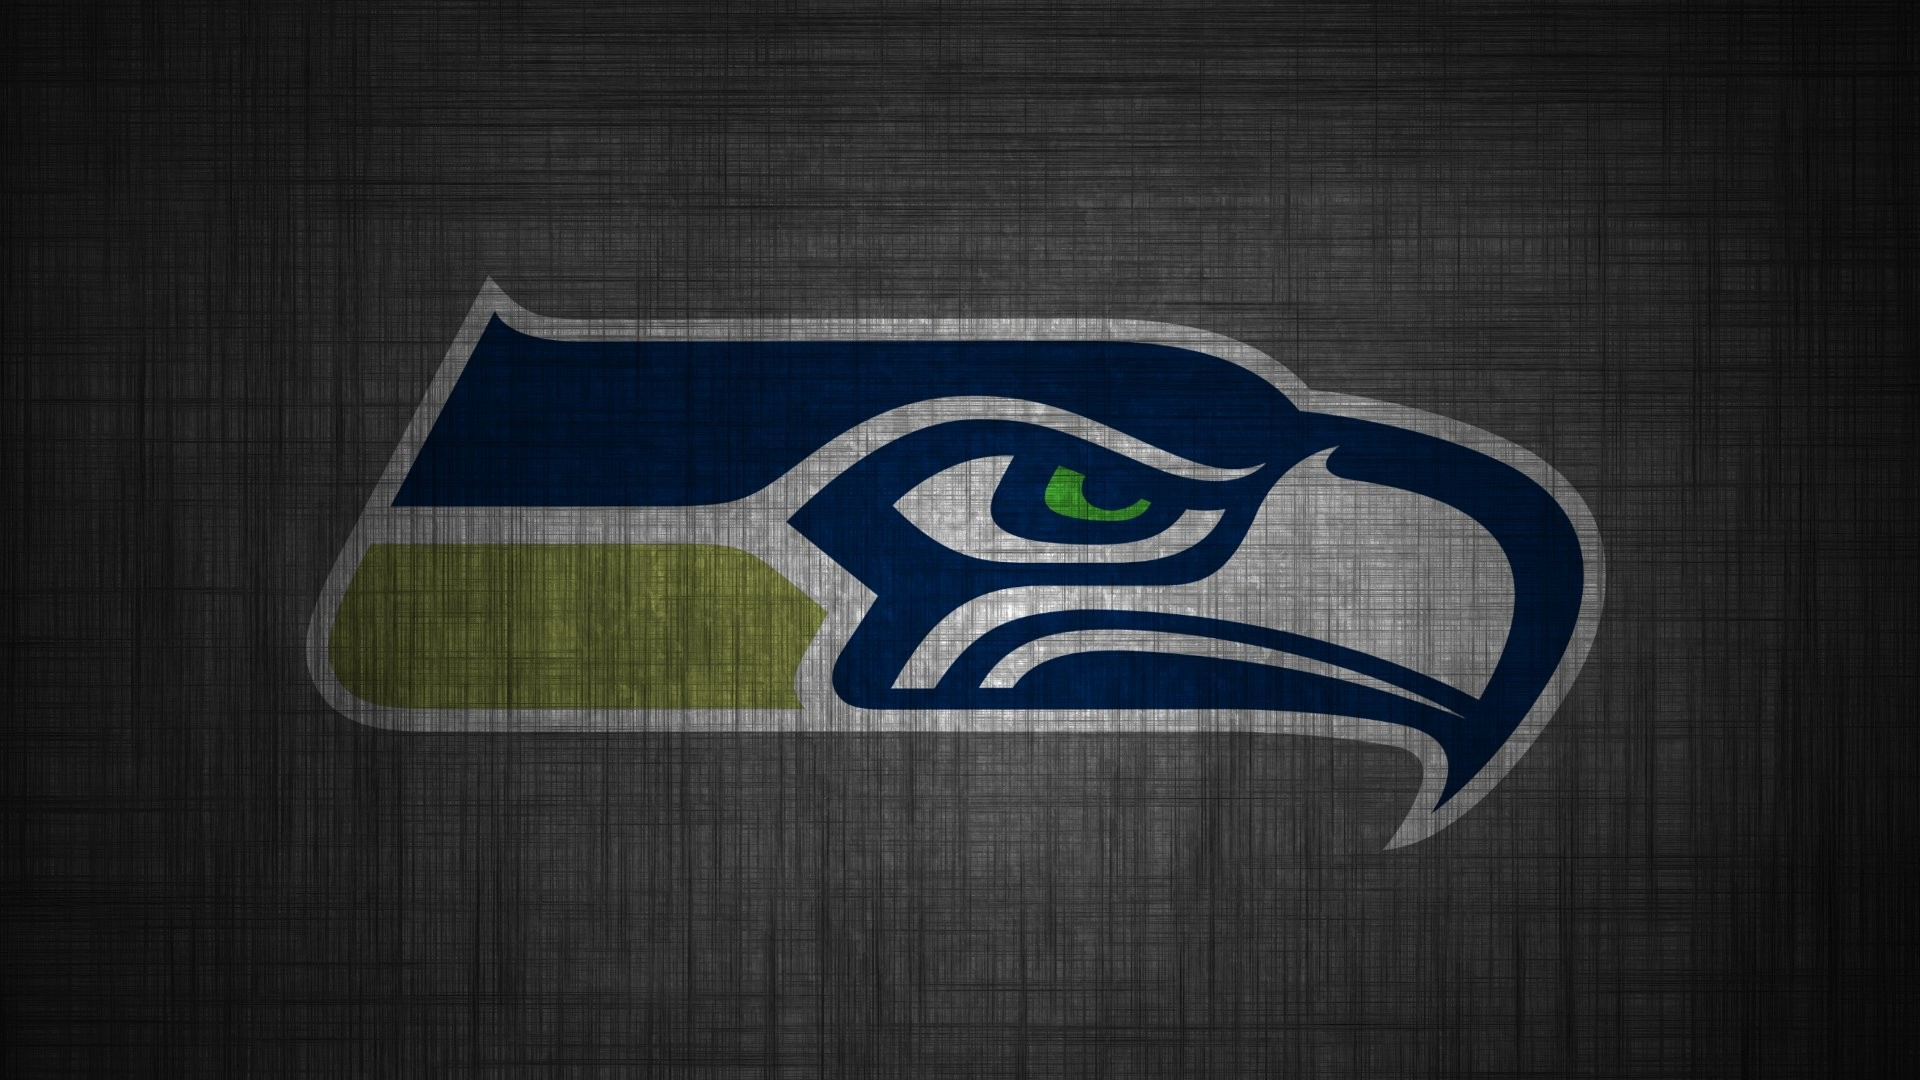 Seattle Seahawks Wallpaper 1920x1080: Seahawks Wallpapers 1920x1080 (80+ Images